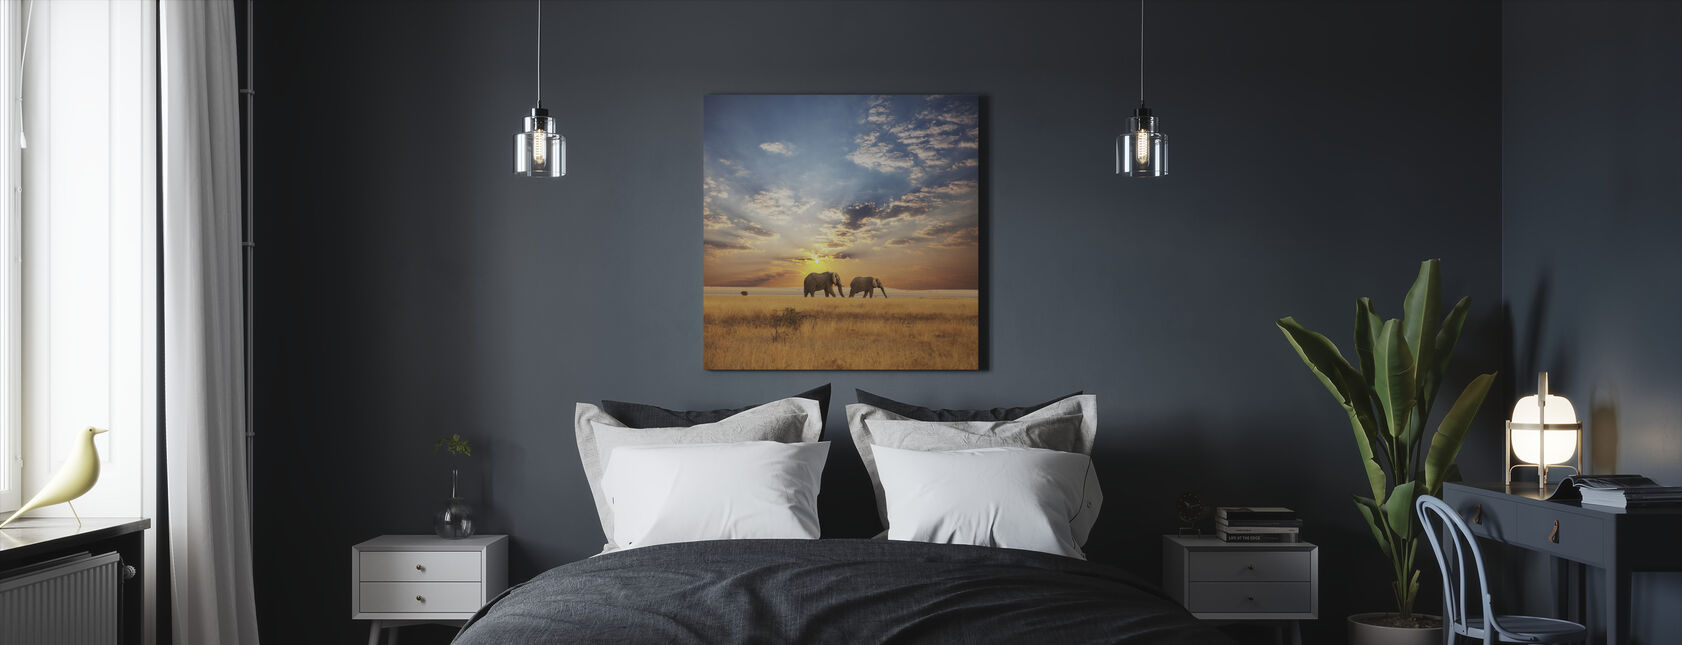 Savannah Sunset - Canvas print - Bedroom